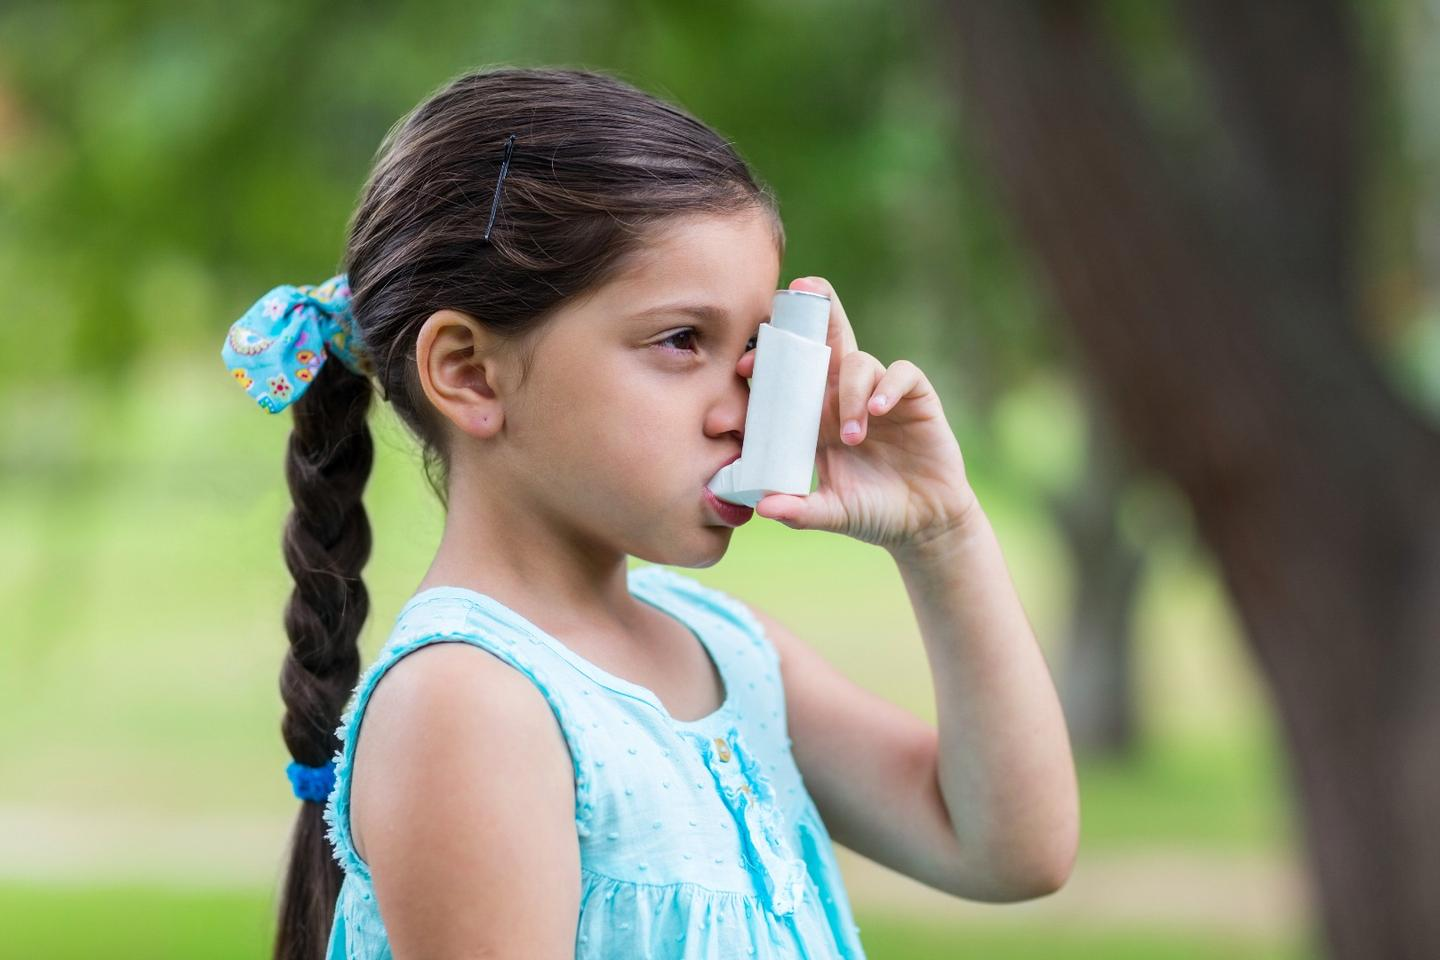 Scientists have uncovered new clues that promise to make diagnosing asthma more straightforward